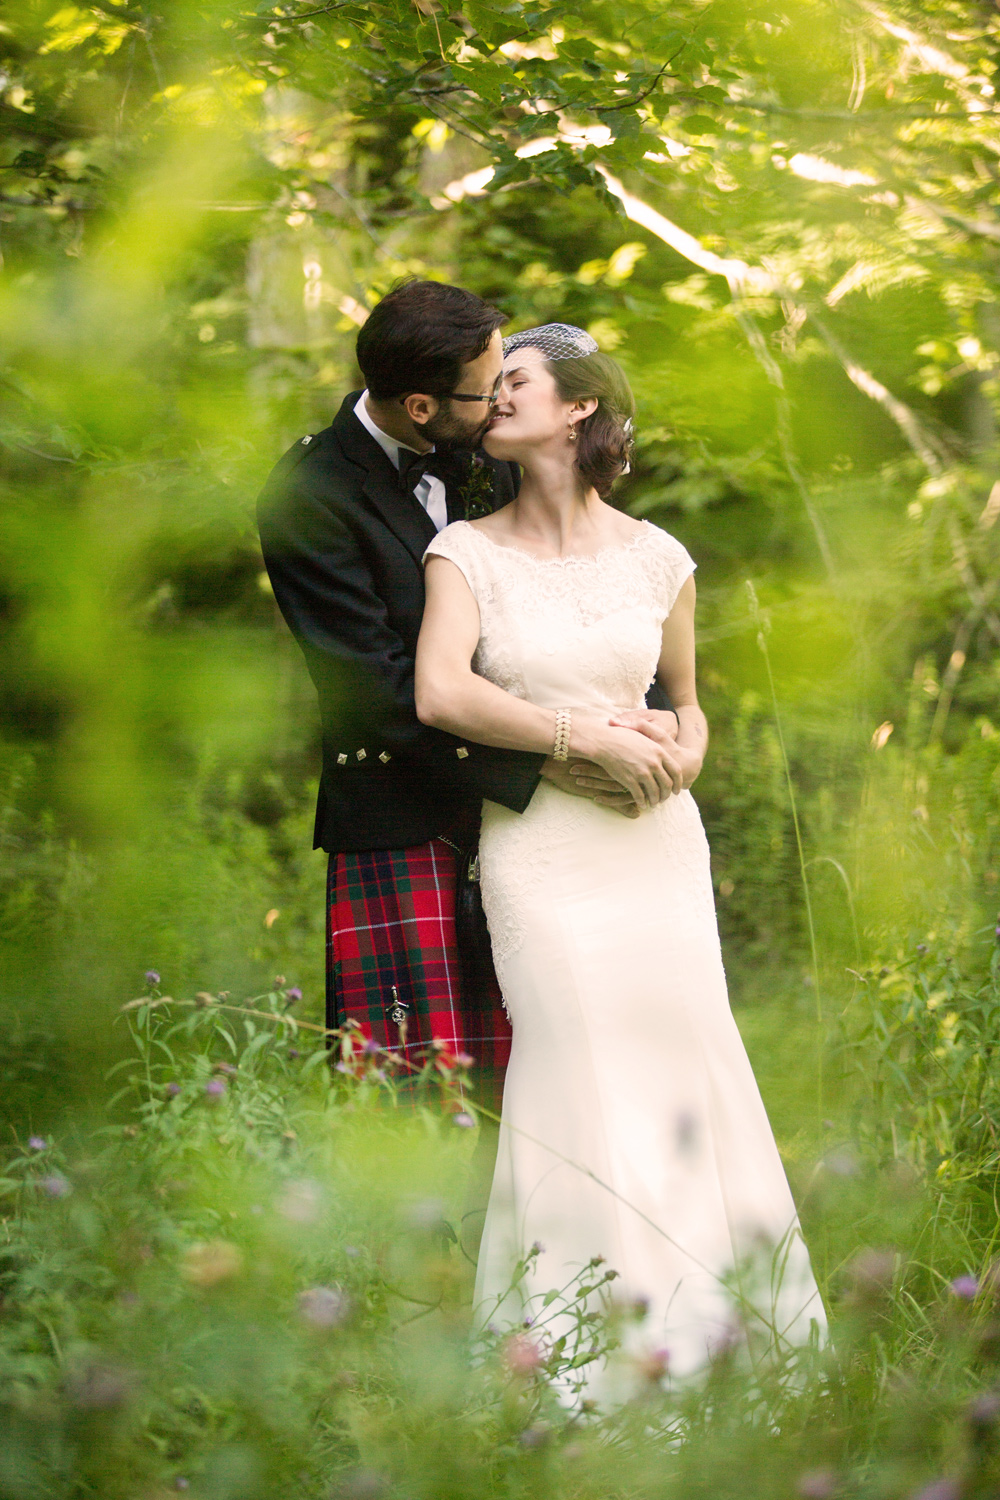 446-nova-scotia-kilt-wedding----.jpg